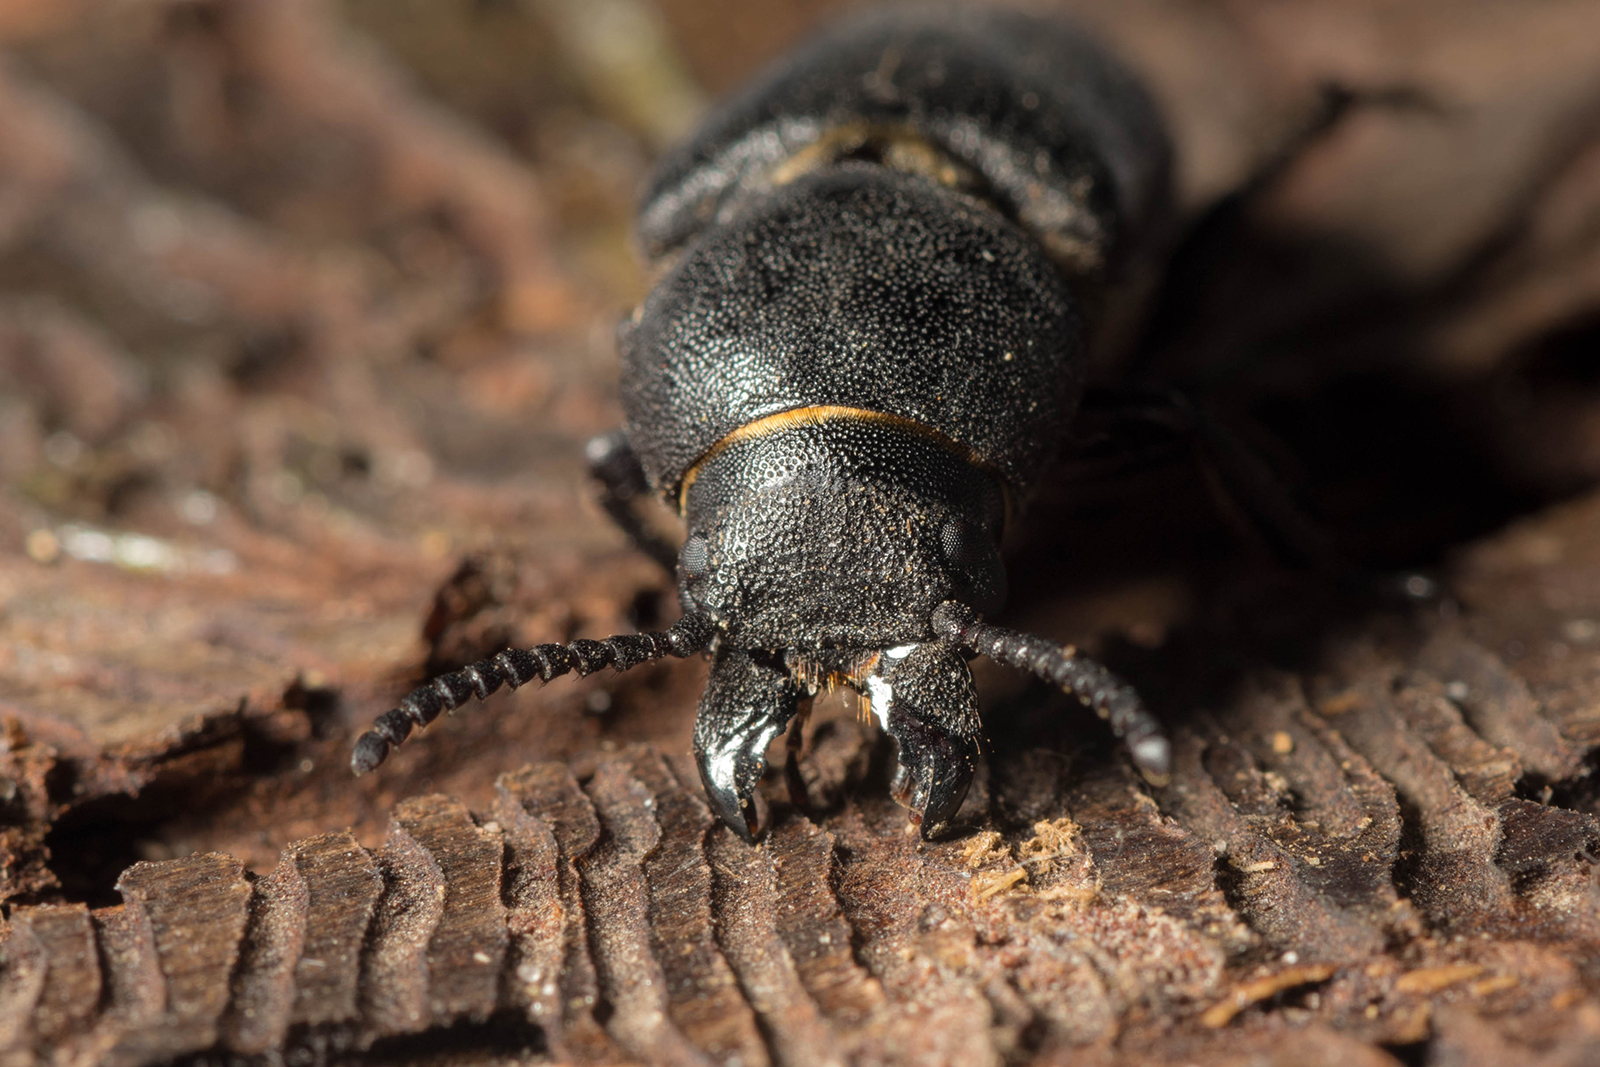 There are thousands of species of bark beetles in the world, of which the European spruce bark beetle is the worst for the economy. Photo: Shutterstock